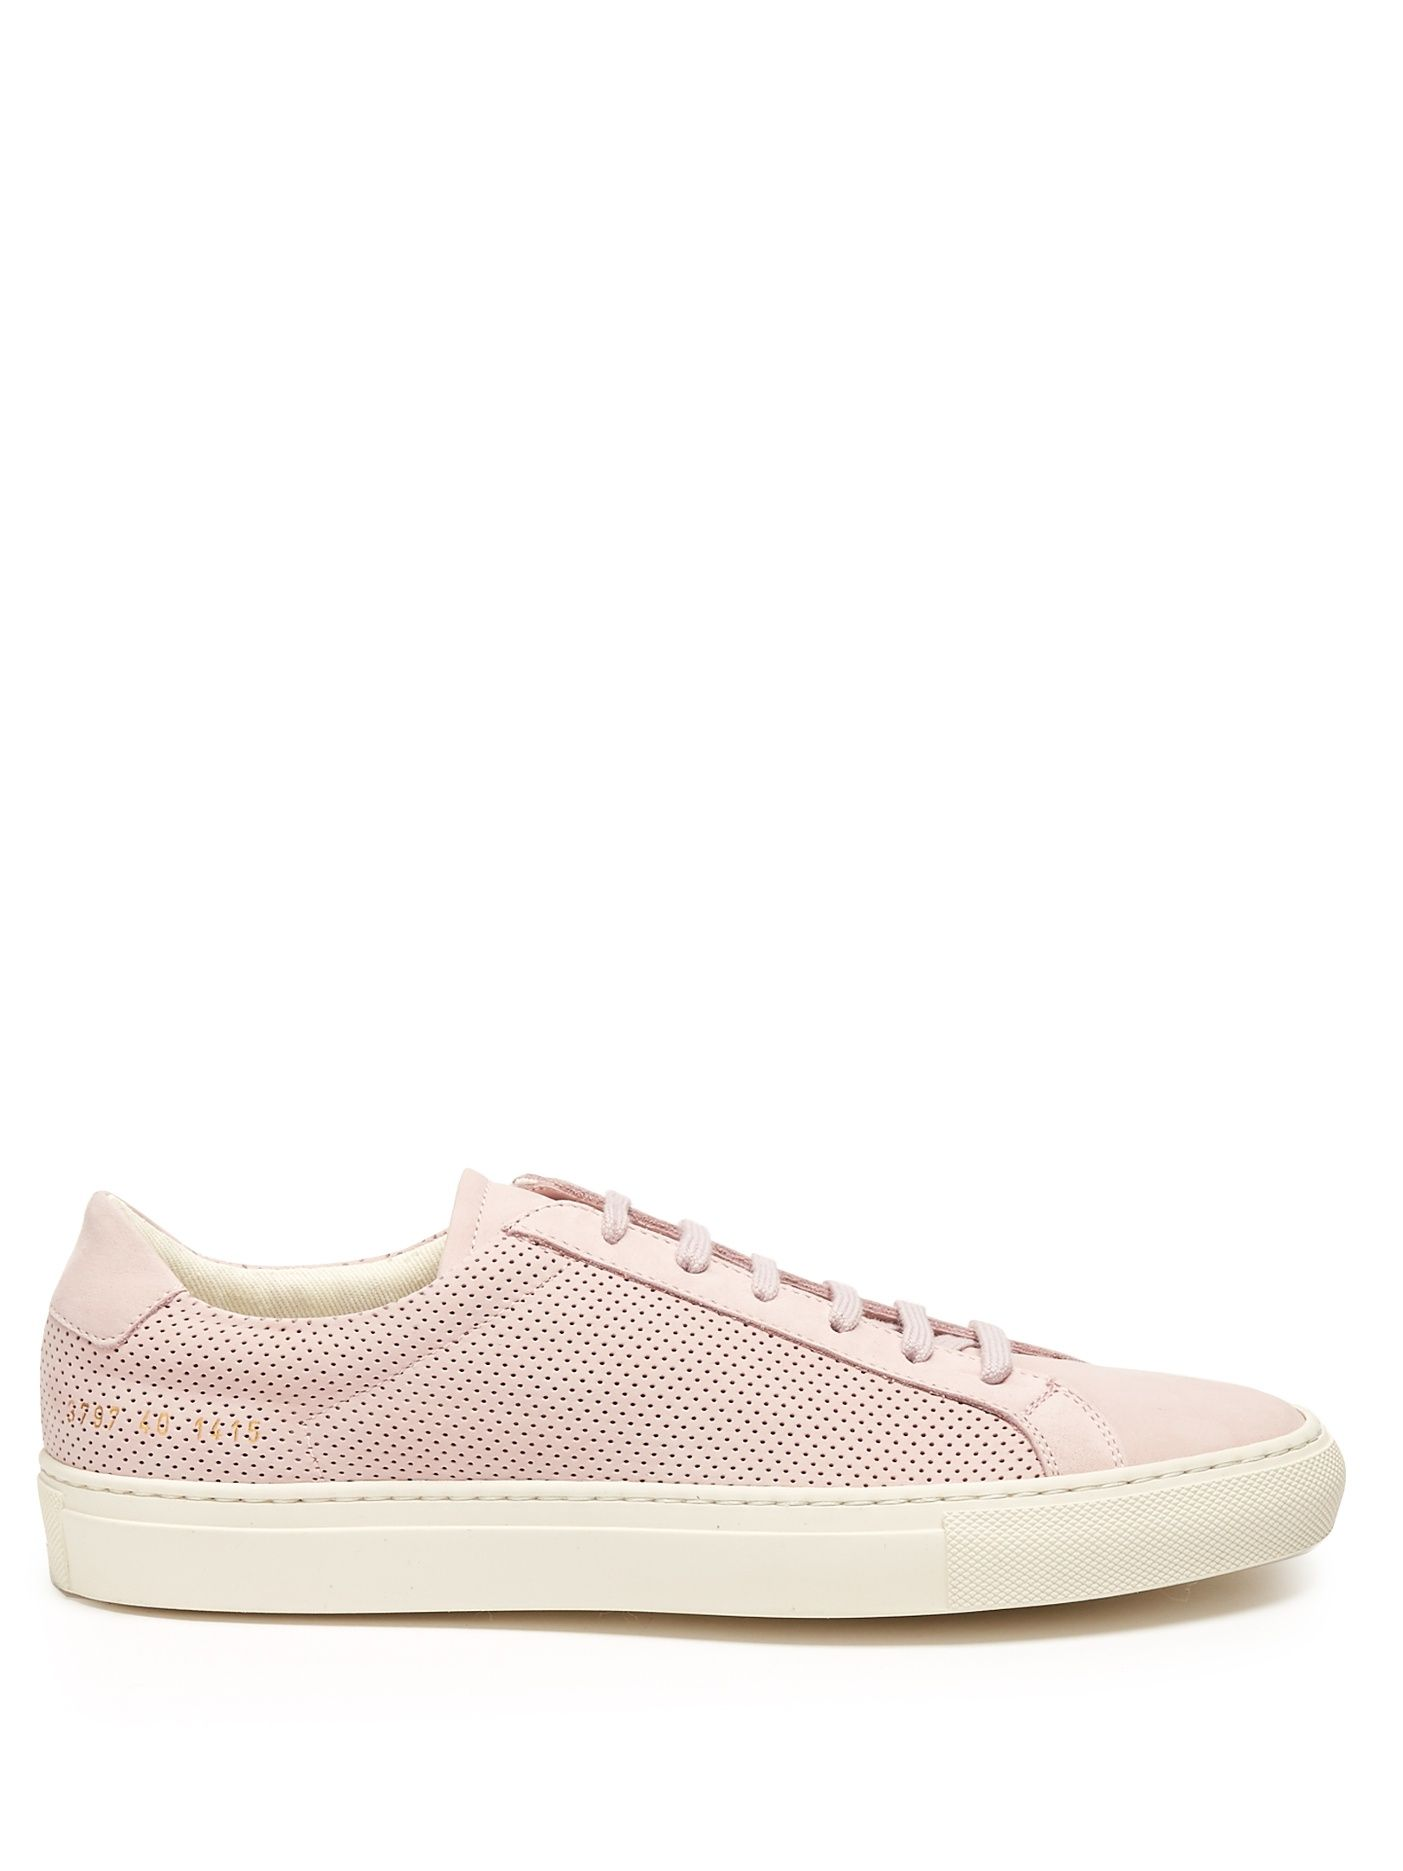 61dba33a79ad Click here to buy Common Projects Achilles low-top perforated-leather  trainers at MATCHESFASHION.COM